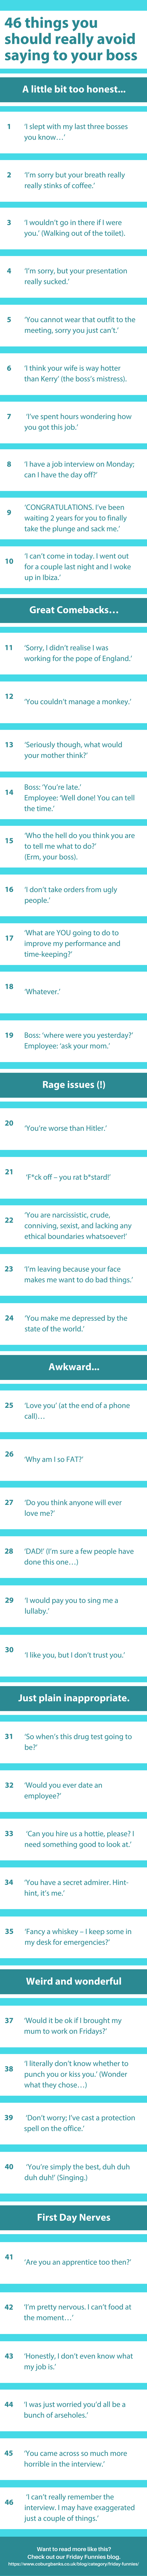 46 things you should really avoid saying to your boss infographic